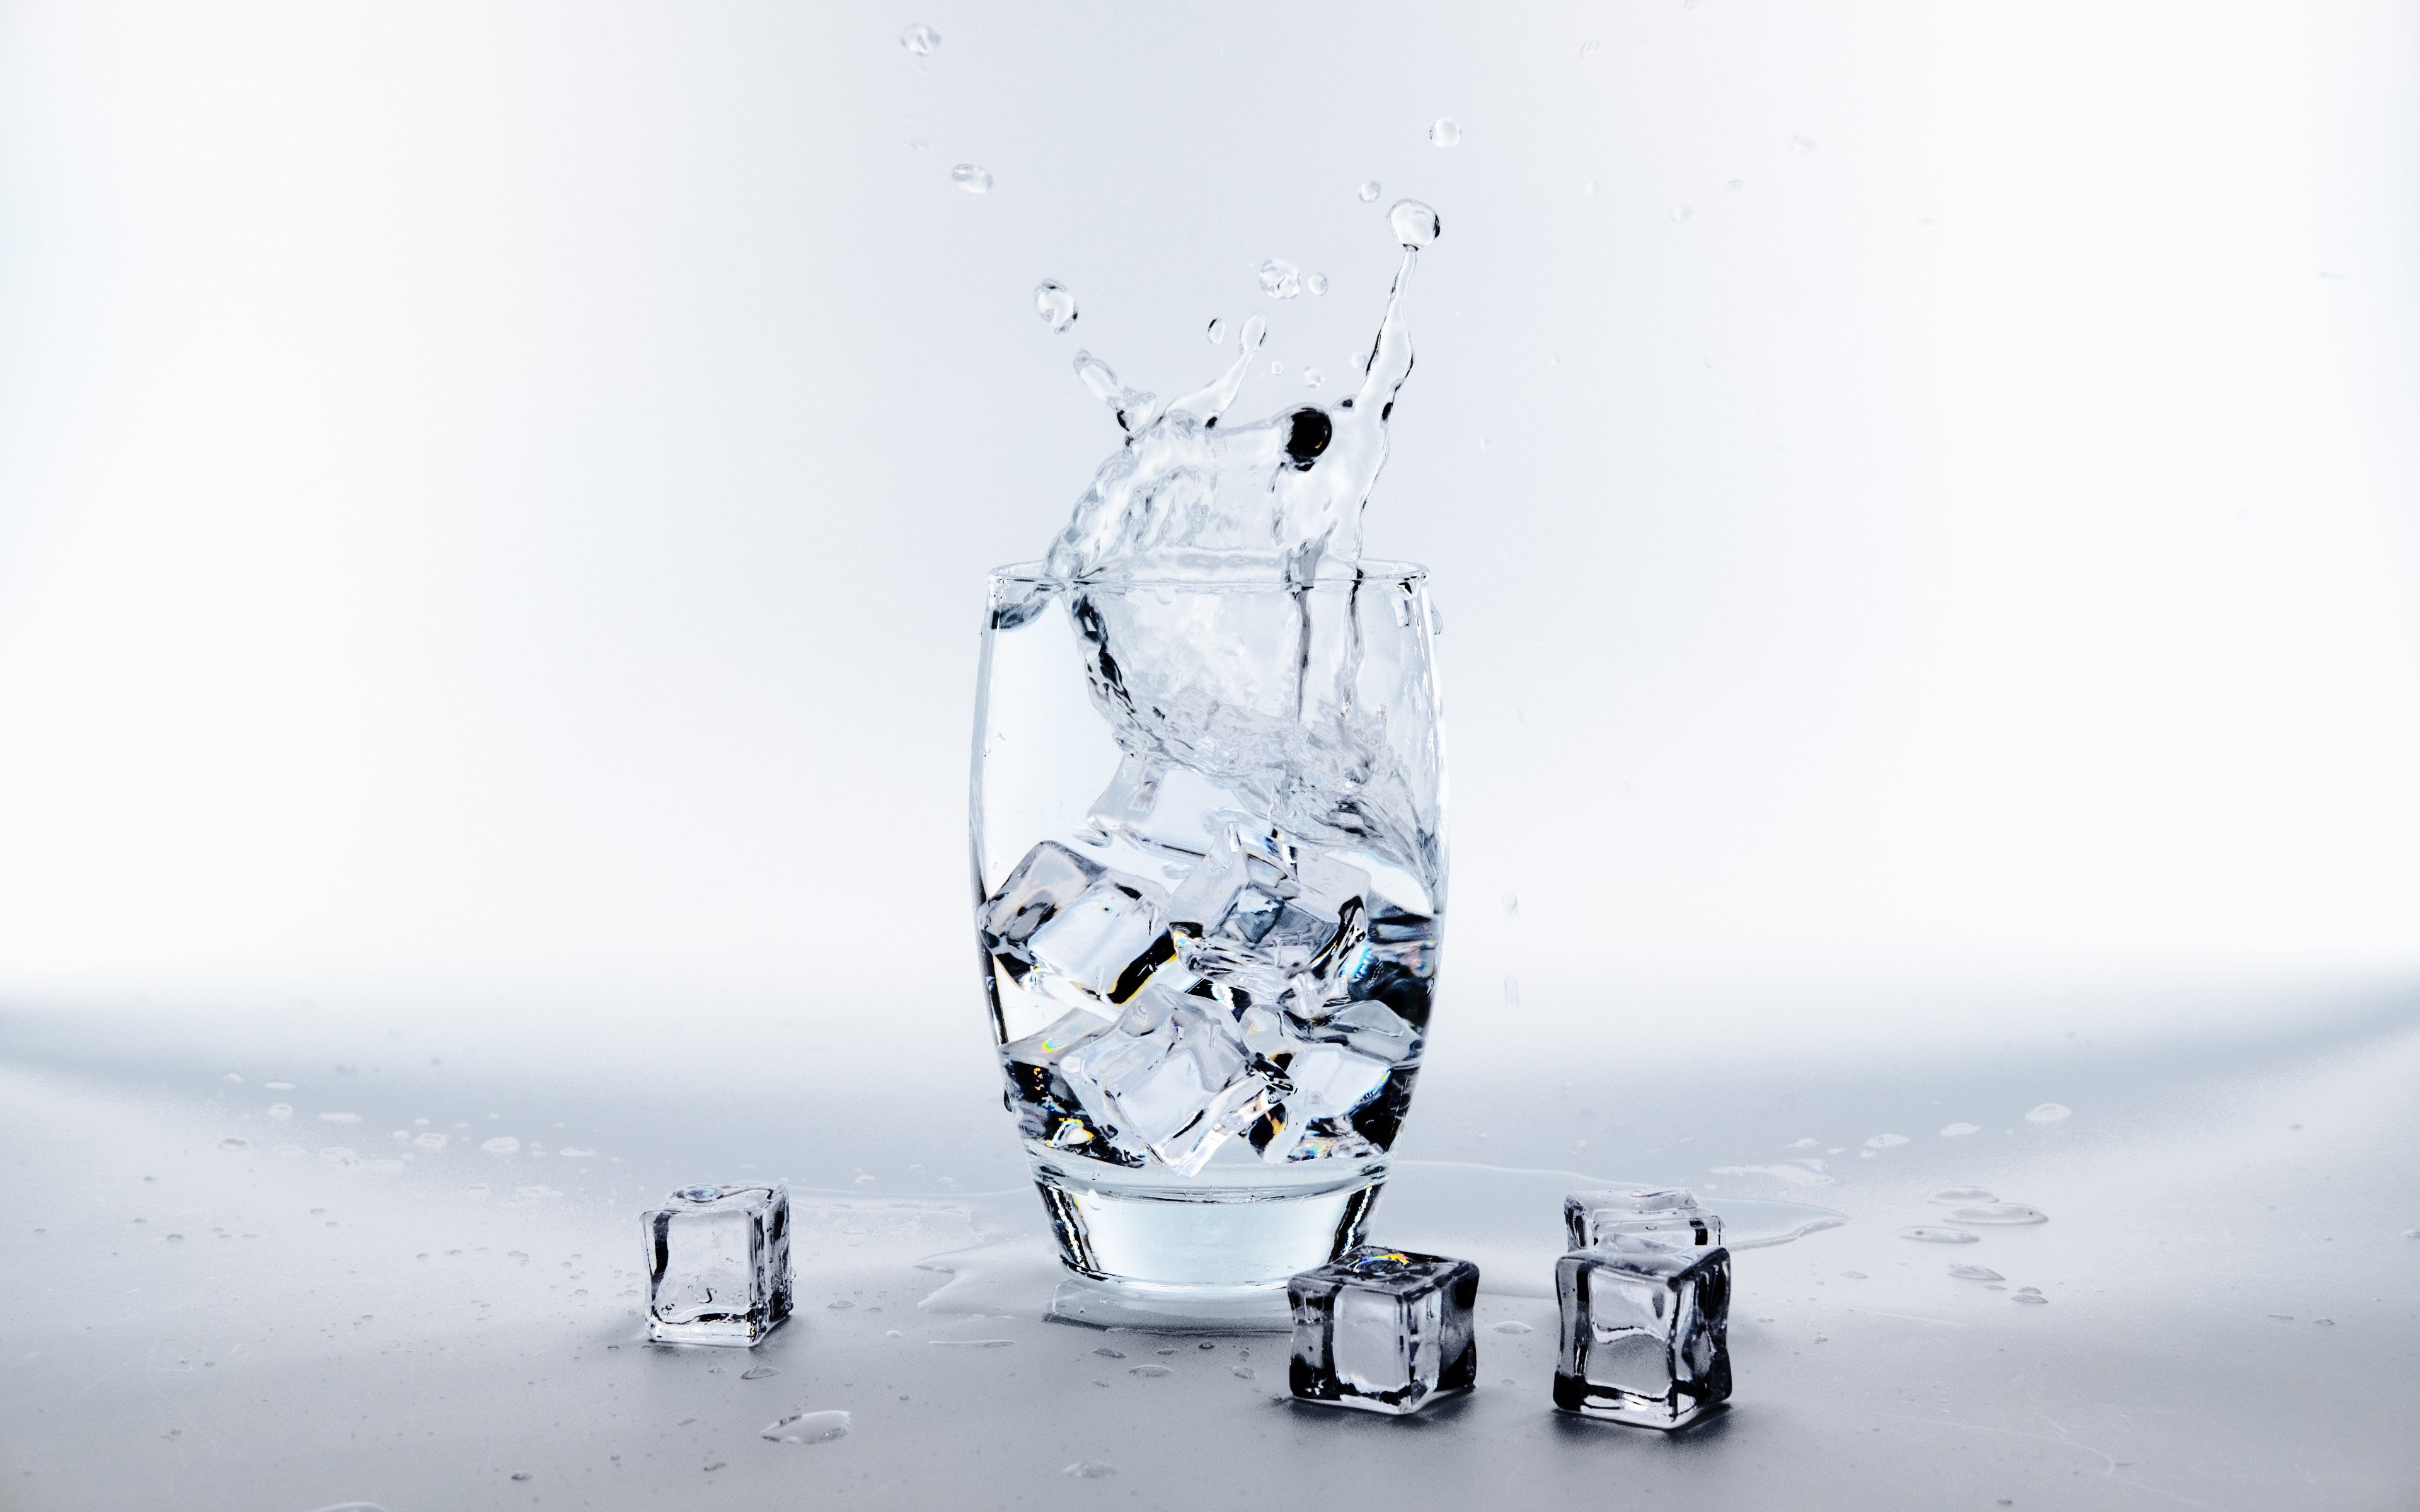 Download Wallpaper Water Glass With Ice Cubes 3840x2400